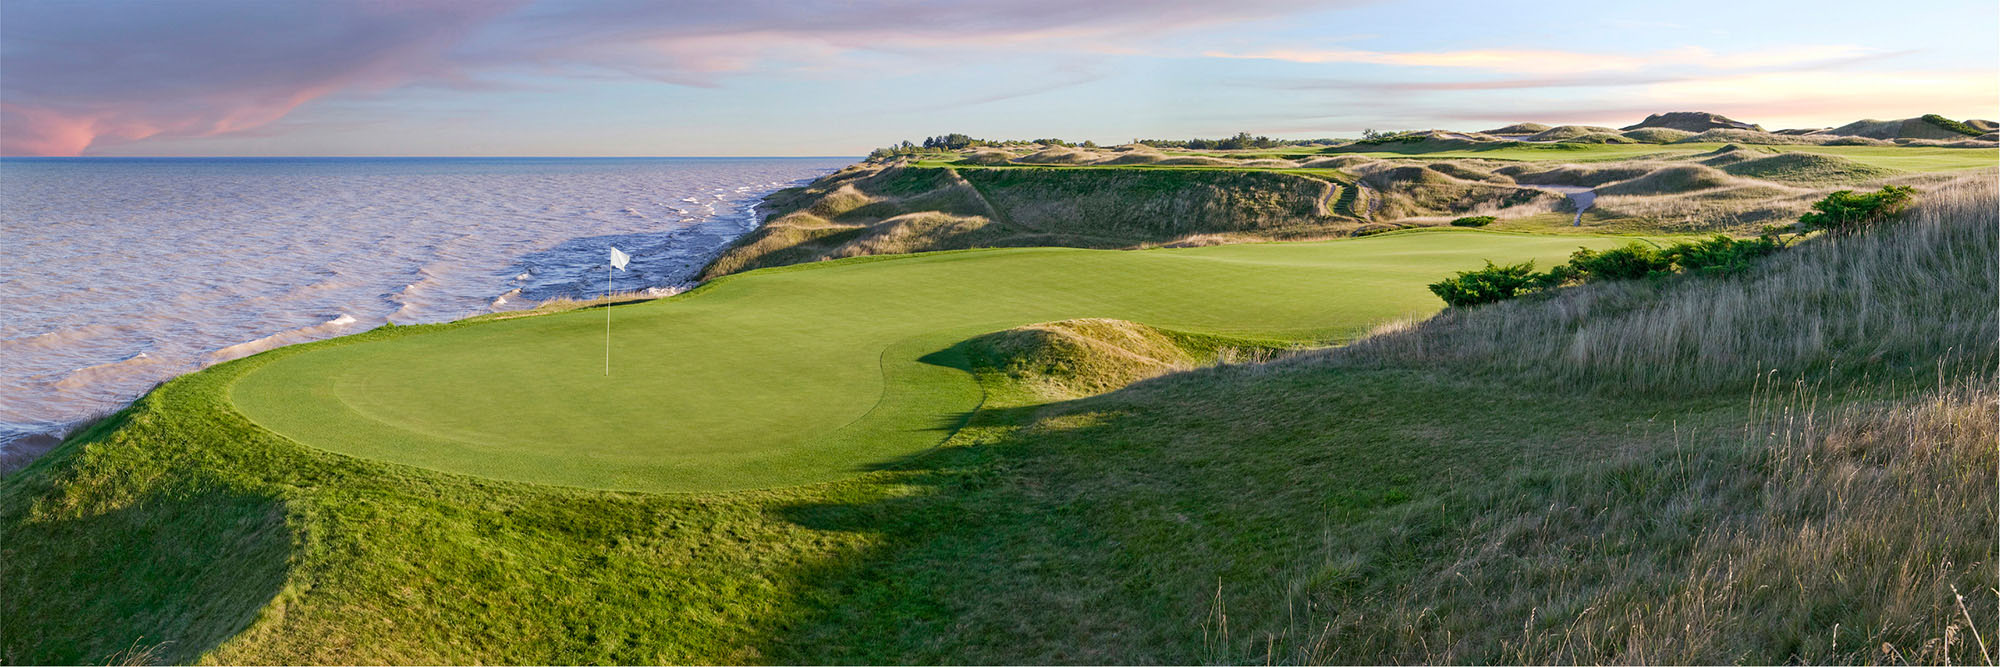 Golf Course Image - Whistling Straits No. 12